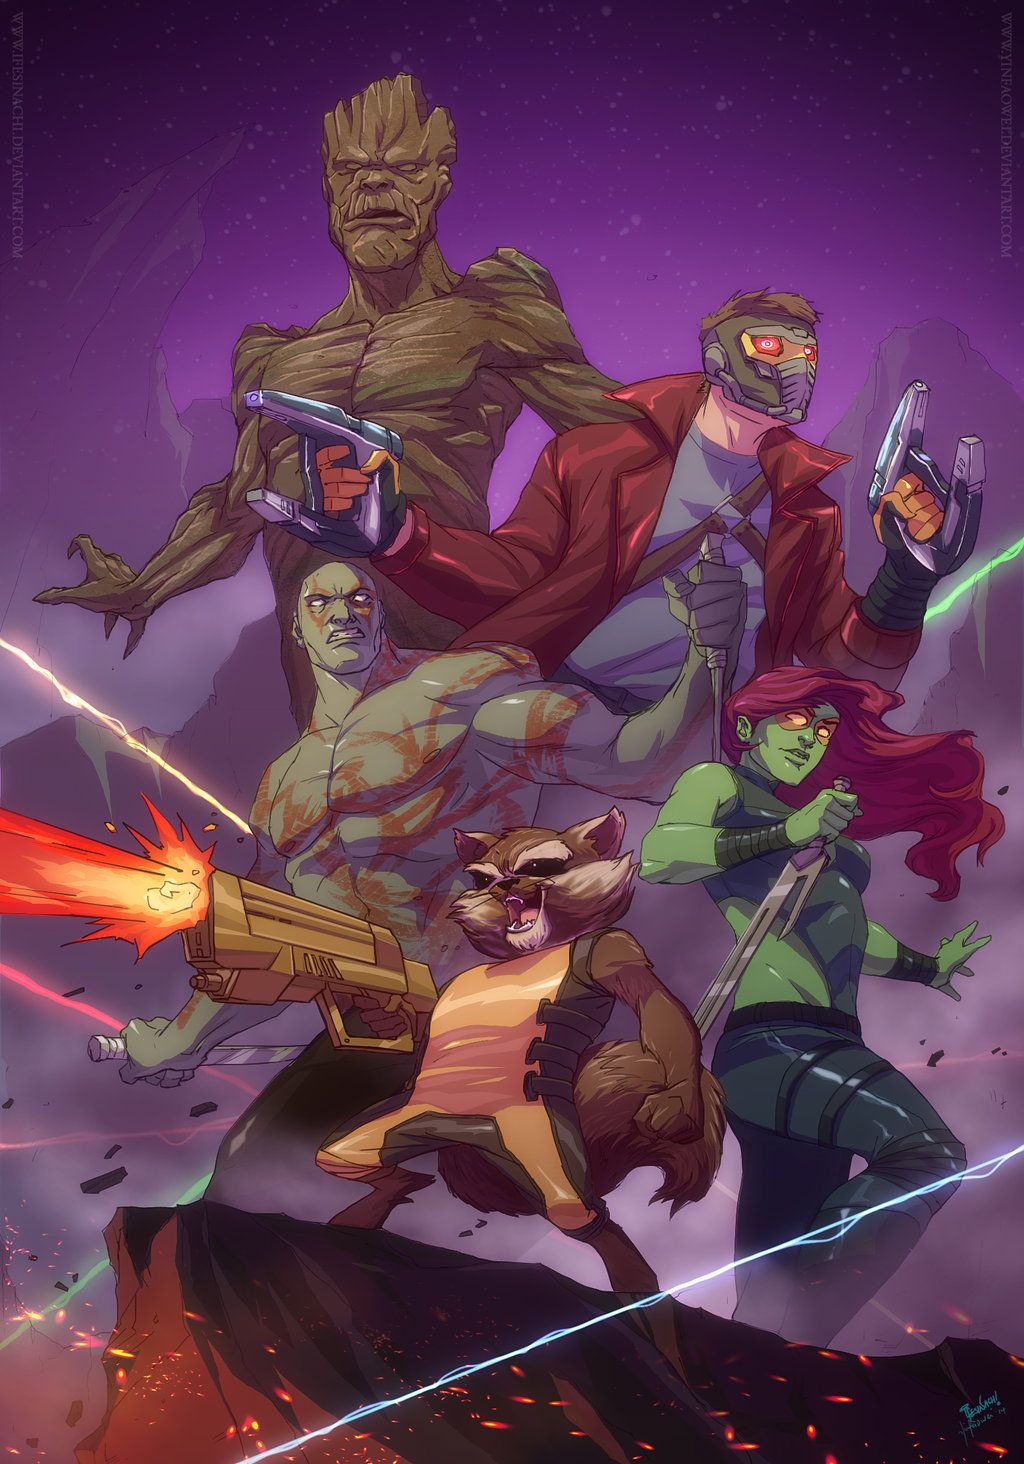 Star Lord And Rocket Raccoon By Timothygreenii On Deviantart: Guardians Of The Galaxy By Yinfaowei.deviantart.com On